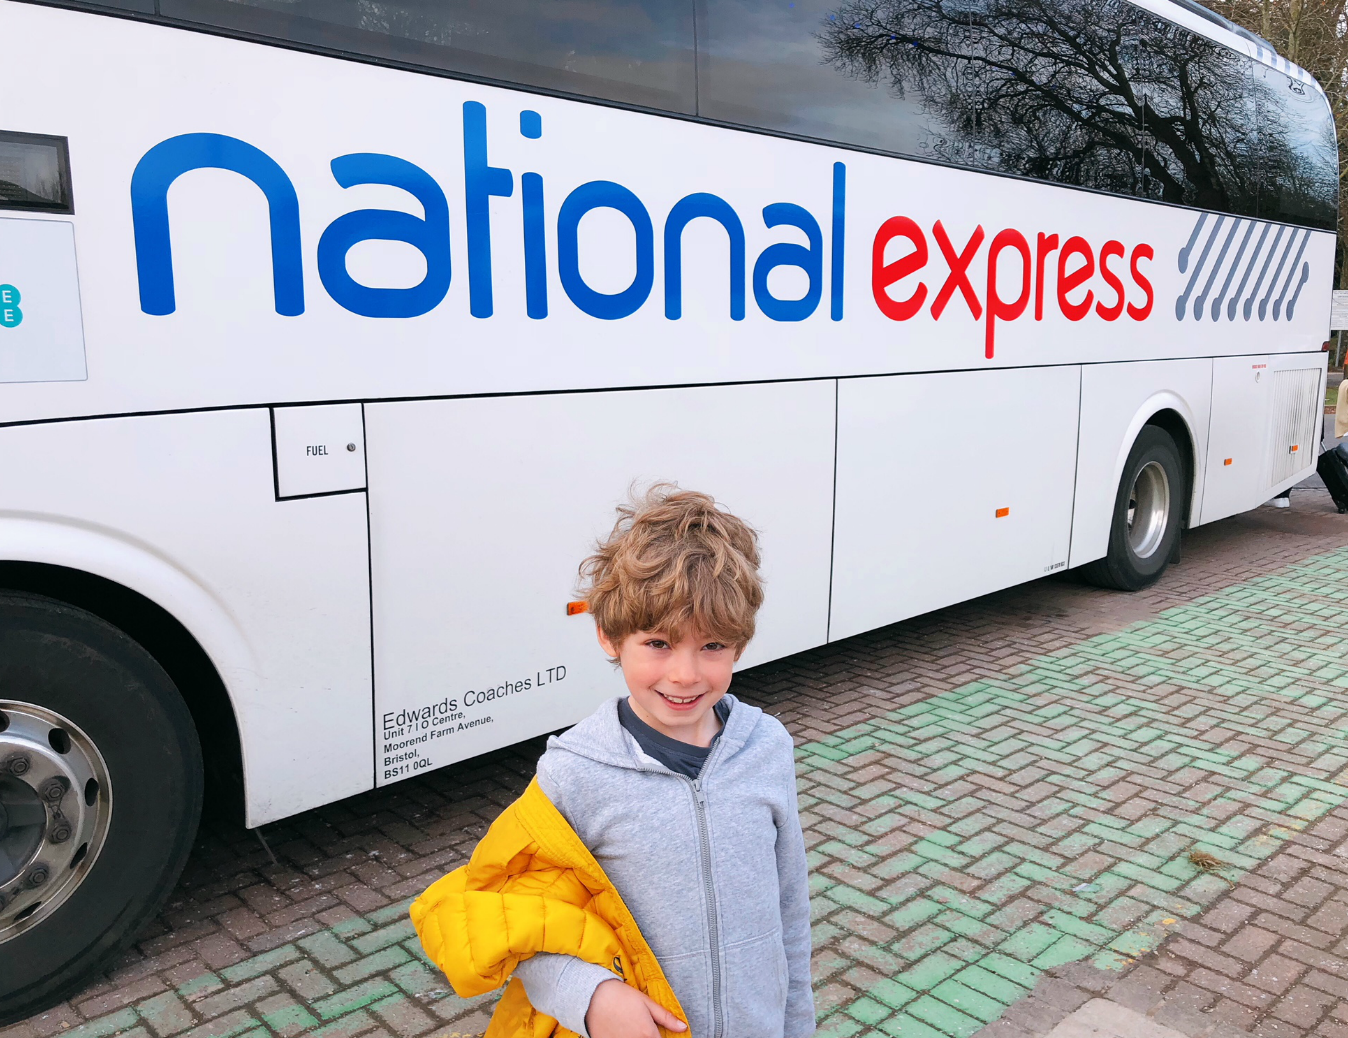 city guide, cardiff, last minute travel, last minute booking, kids guide to cardiff, things to do in cardiff with kids, last minute ticket, national express